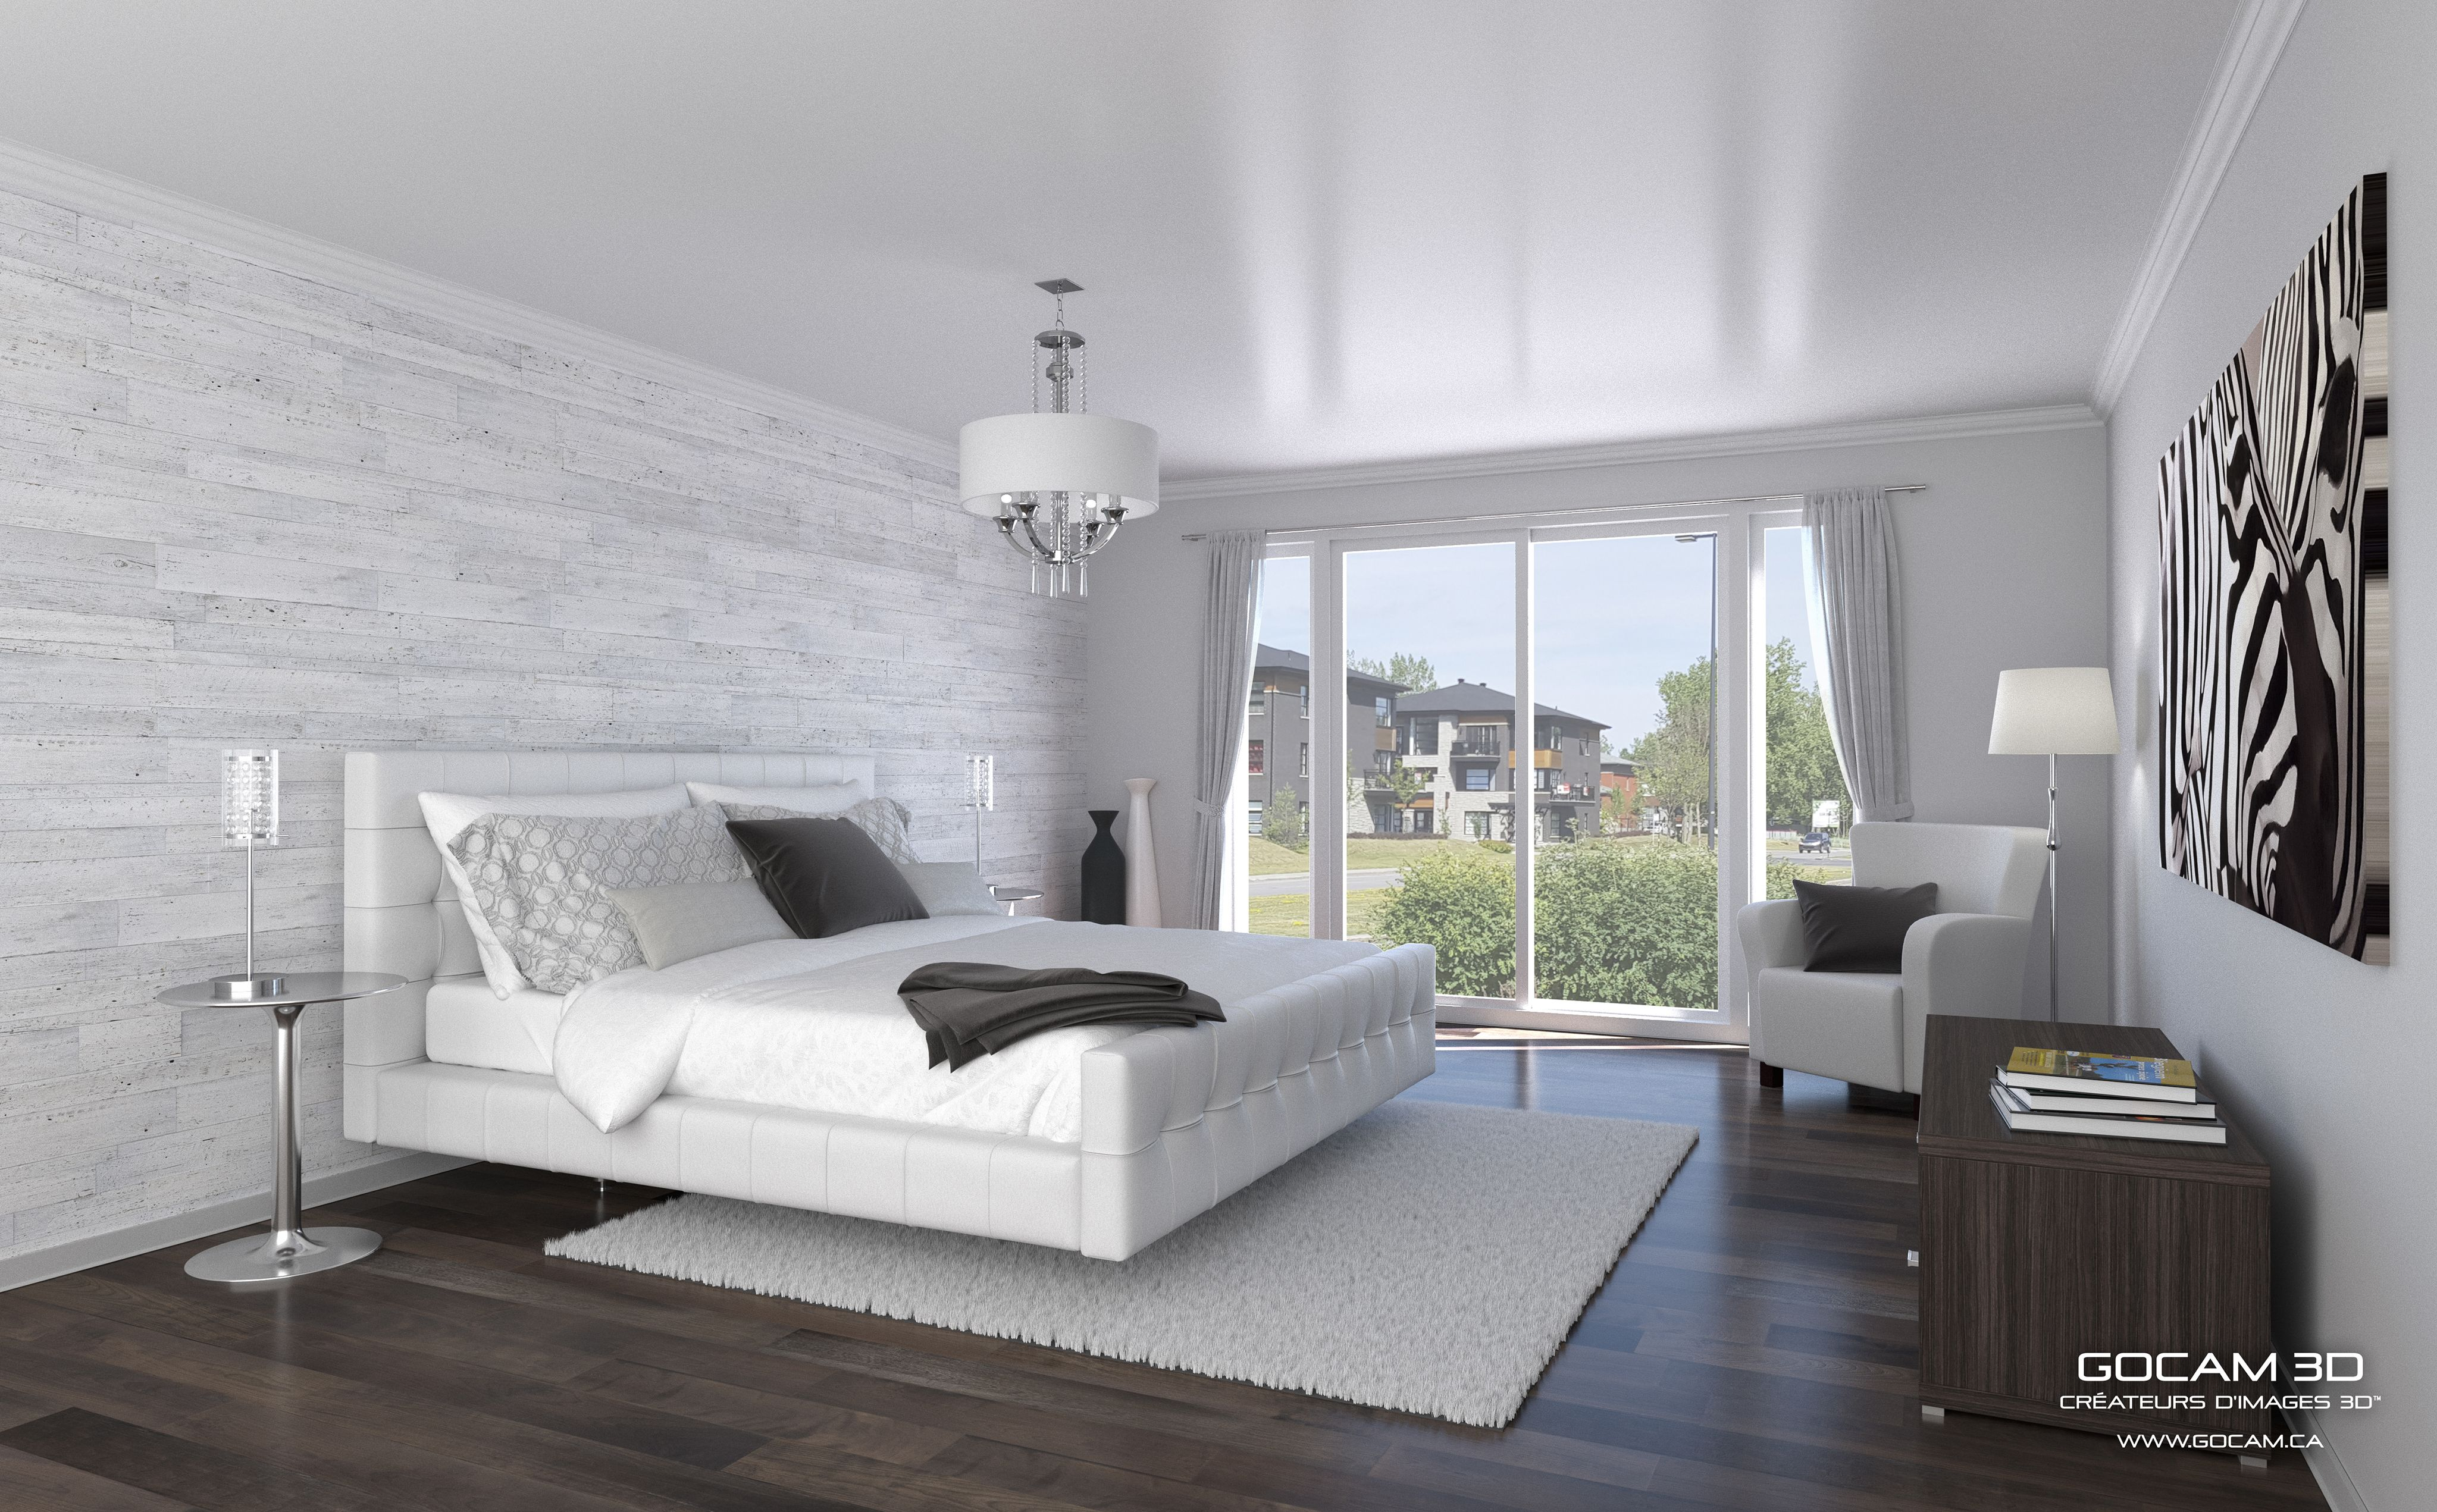 Here is one of our latest photorealistic 3D bedroom visual